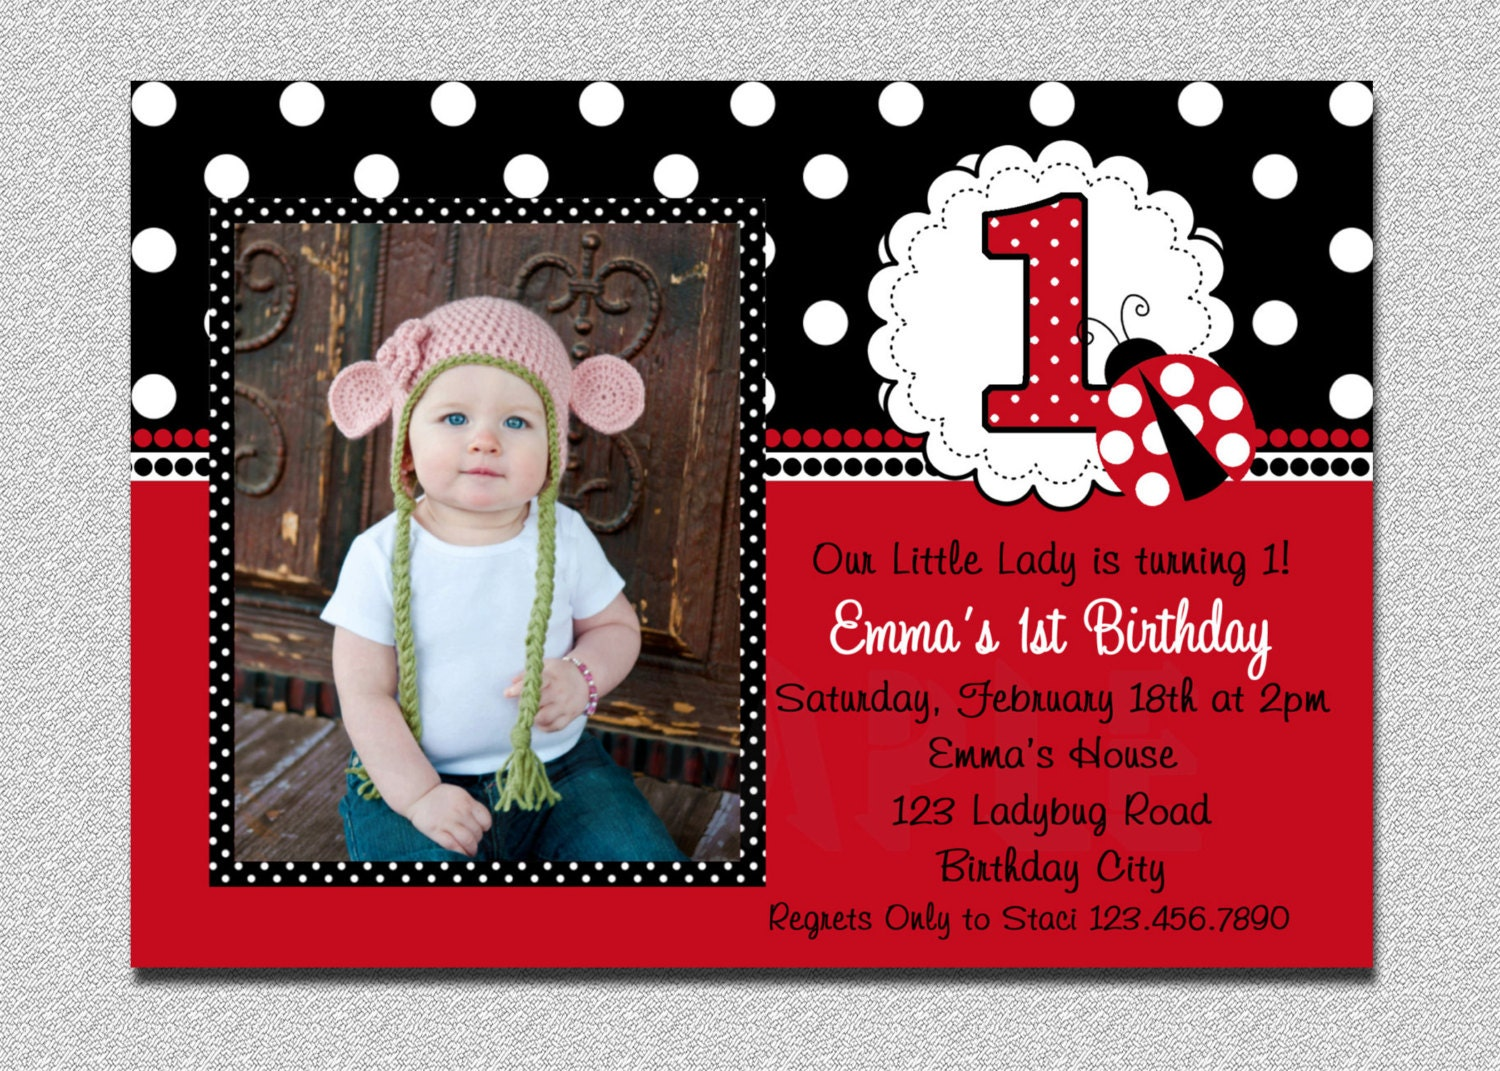 Ladybug Birthday Invitation Ladybug 1st Birthday Party Red – Ladybug Invitations 1st Birthday